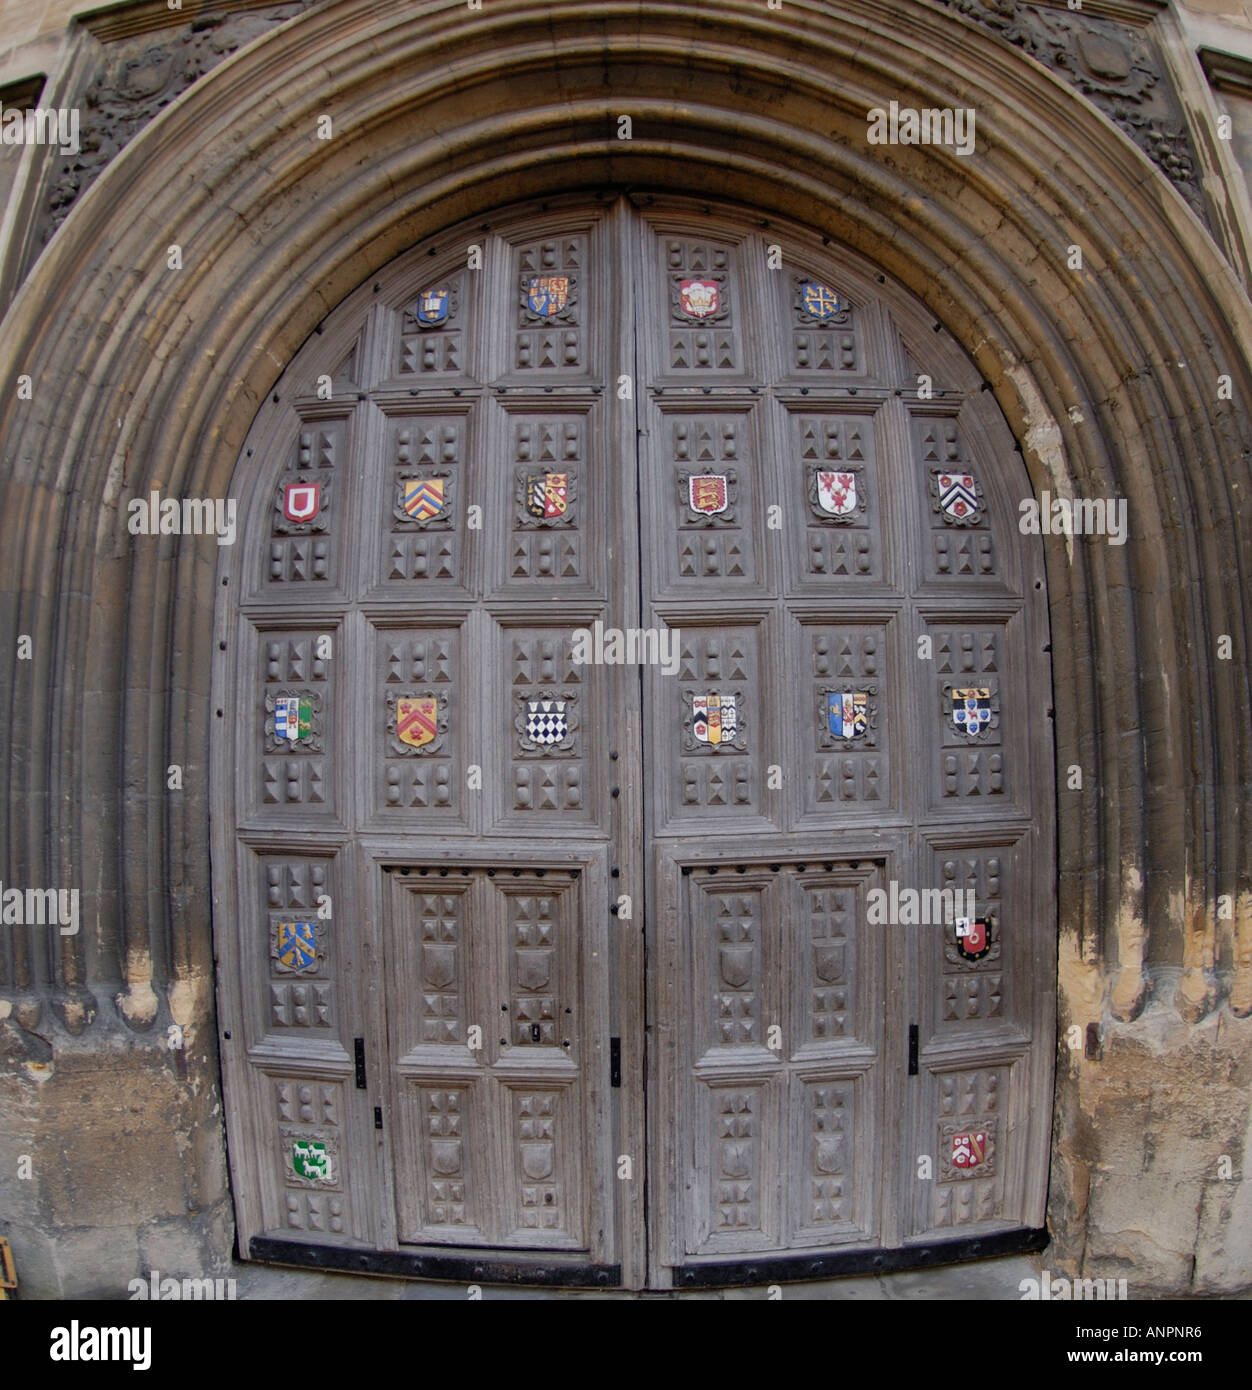 Door to Oxford University Bodleian Library & Door to Oxford University Bodleian Library Stock Photo: 8903221 - Alamy